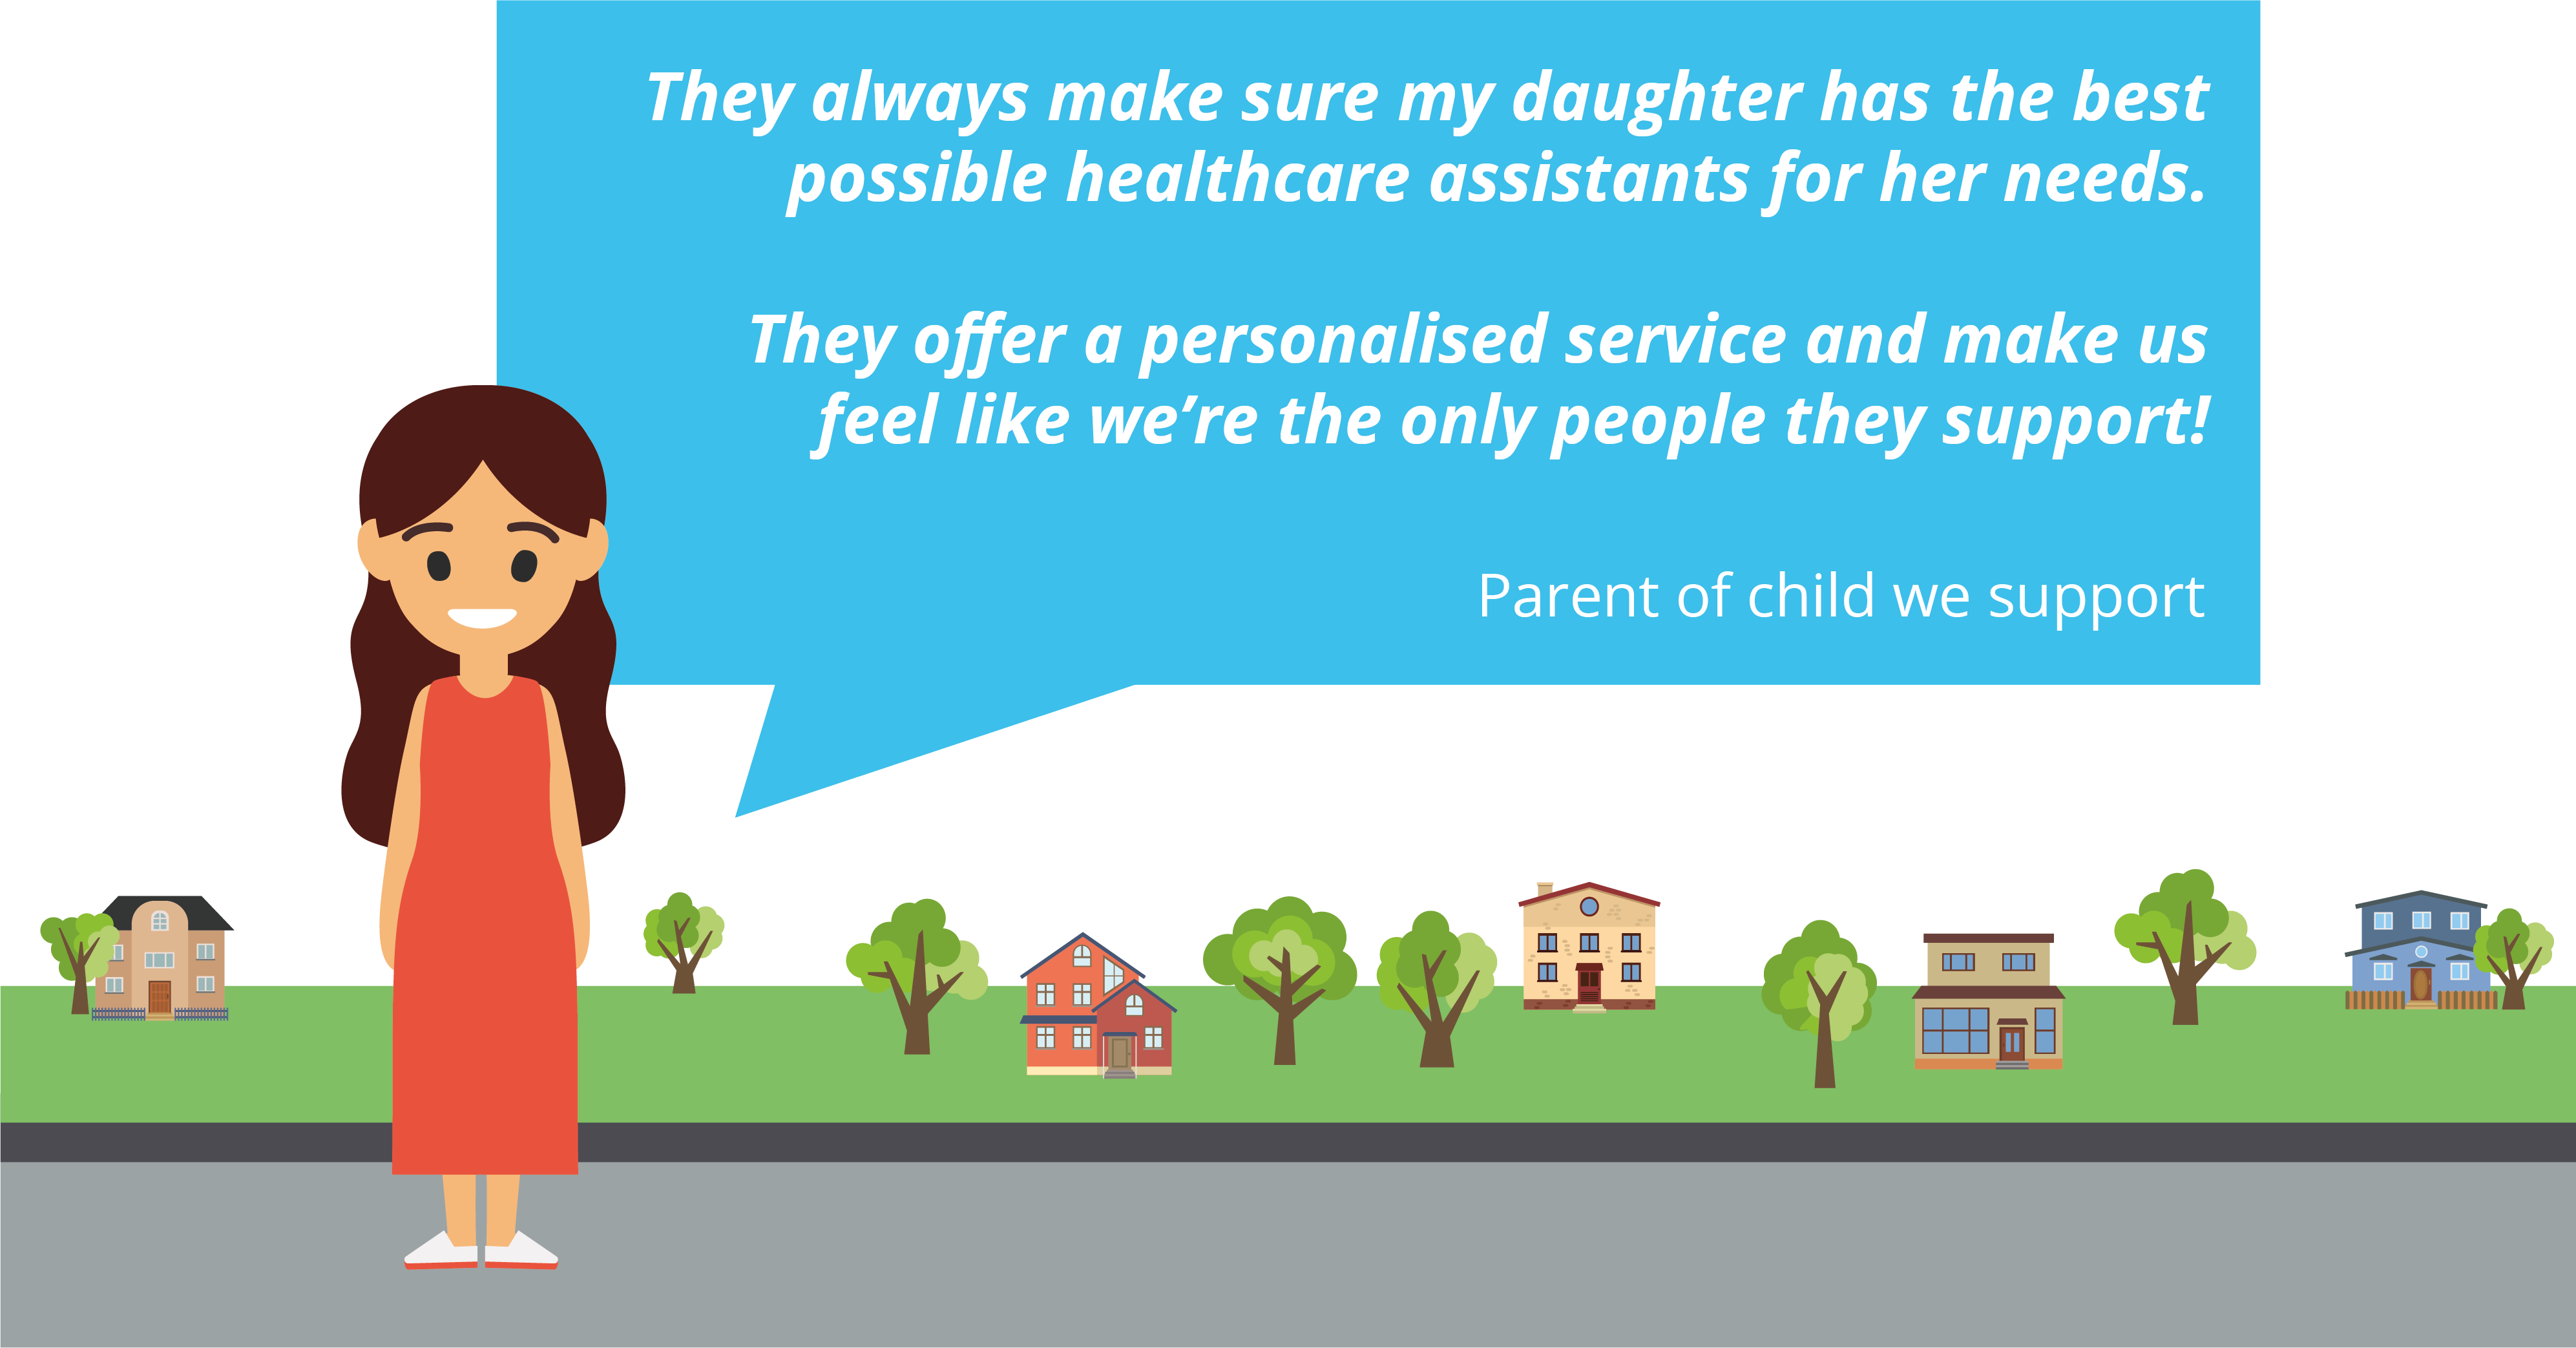 """Child specific training quote from a parent of someone we support:  """"They always make sure my daughter has the best possible healthcare assistants for her needs. They offer a personalised service and make us feel like we're the only people they support!"""""""